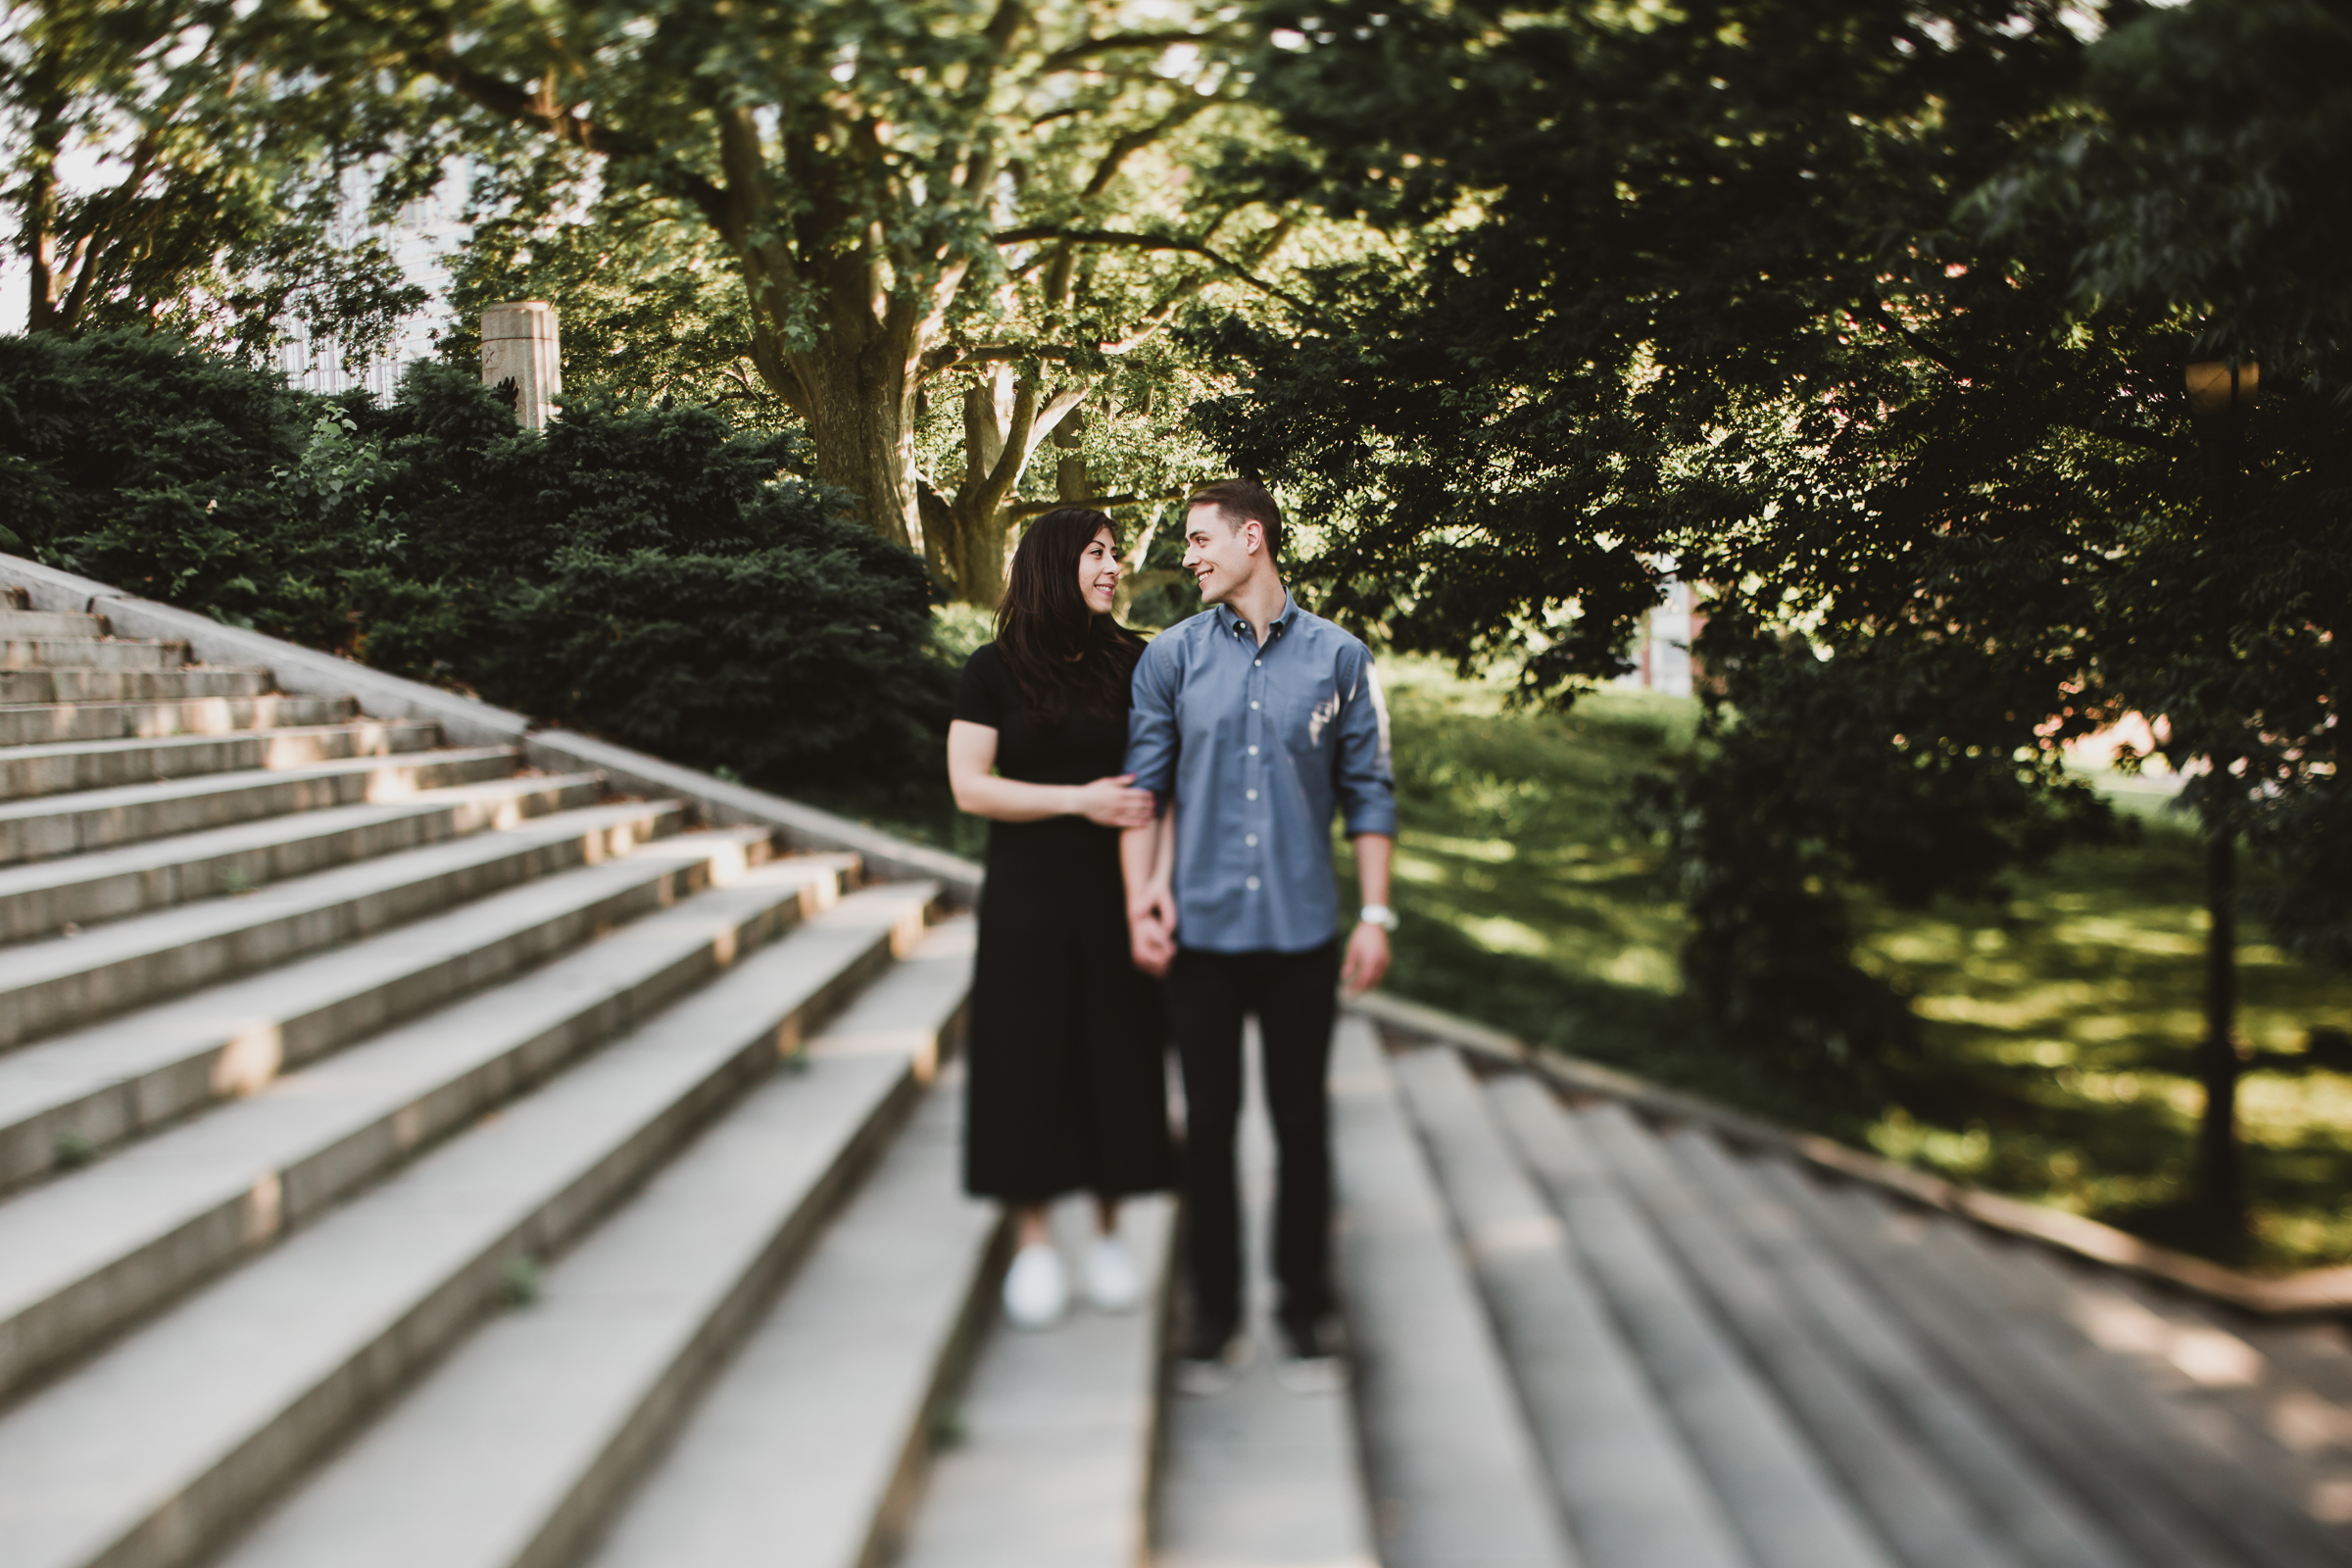 Fort-Greene-Park-Brooklyn-Engagement-Photos-19.jpg